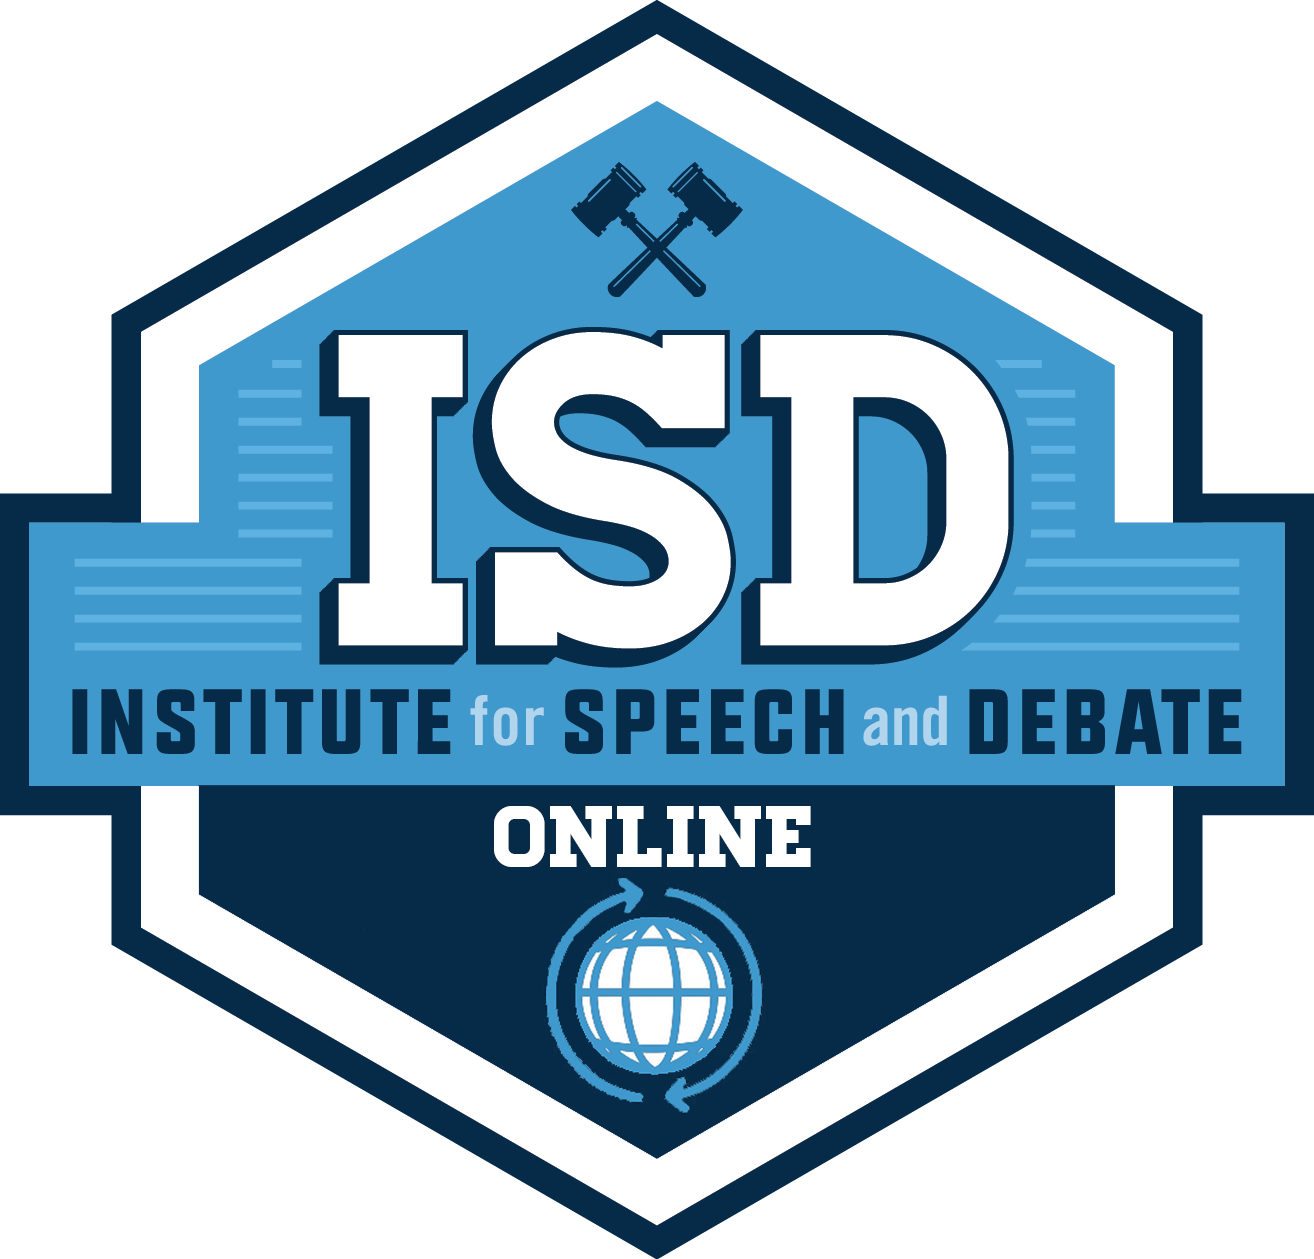 The Institute for Speech and Debate